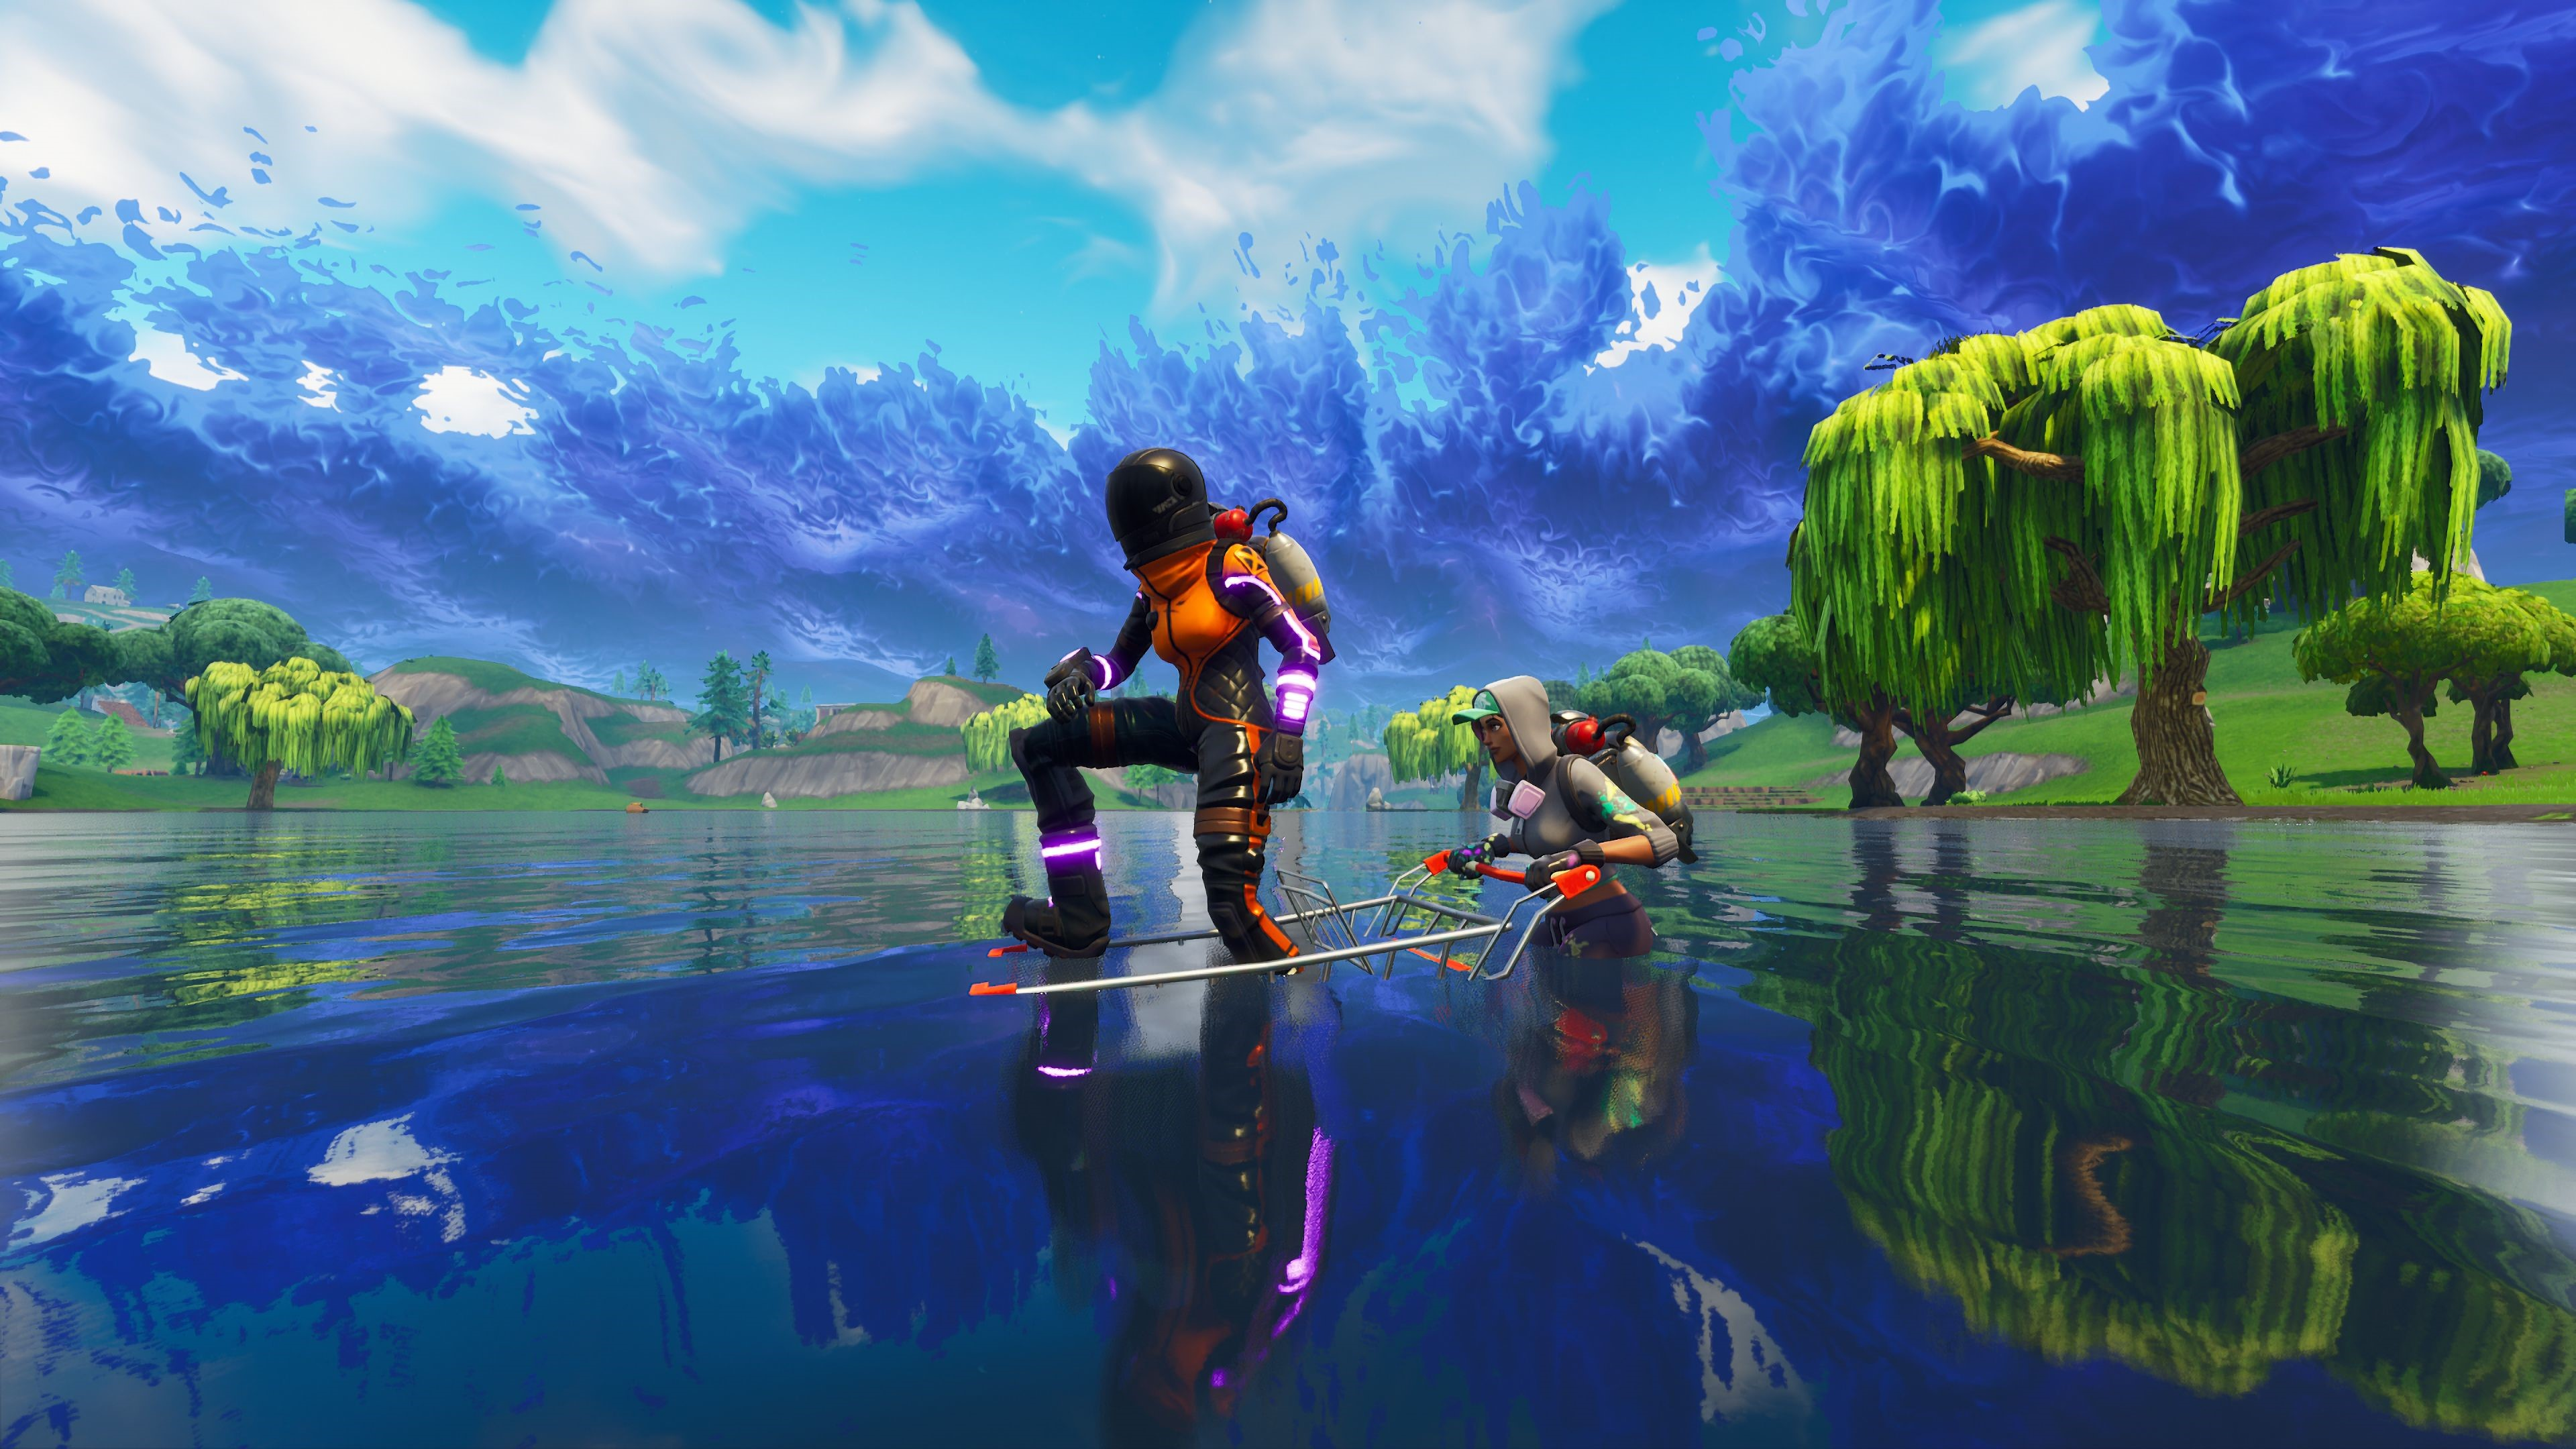 Fortnite Wallpapers And Photos 4k Full Hd 32 More Everest Hill